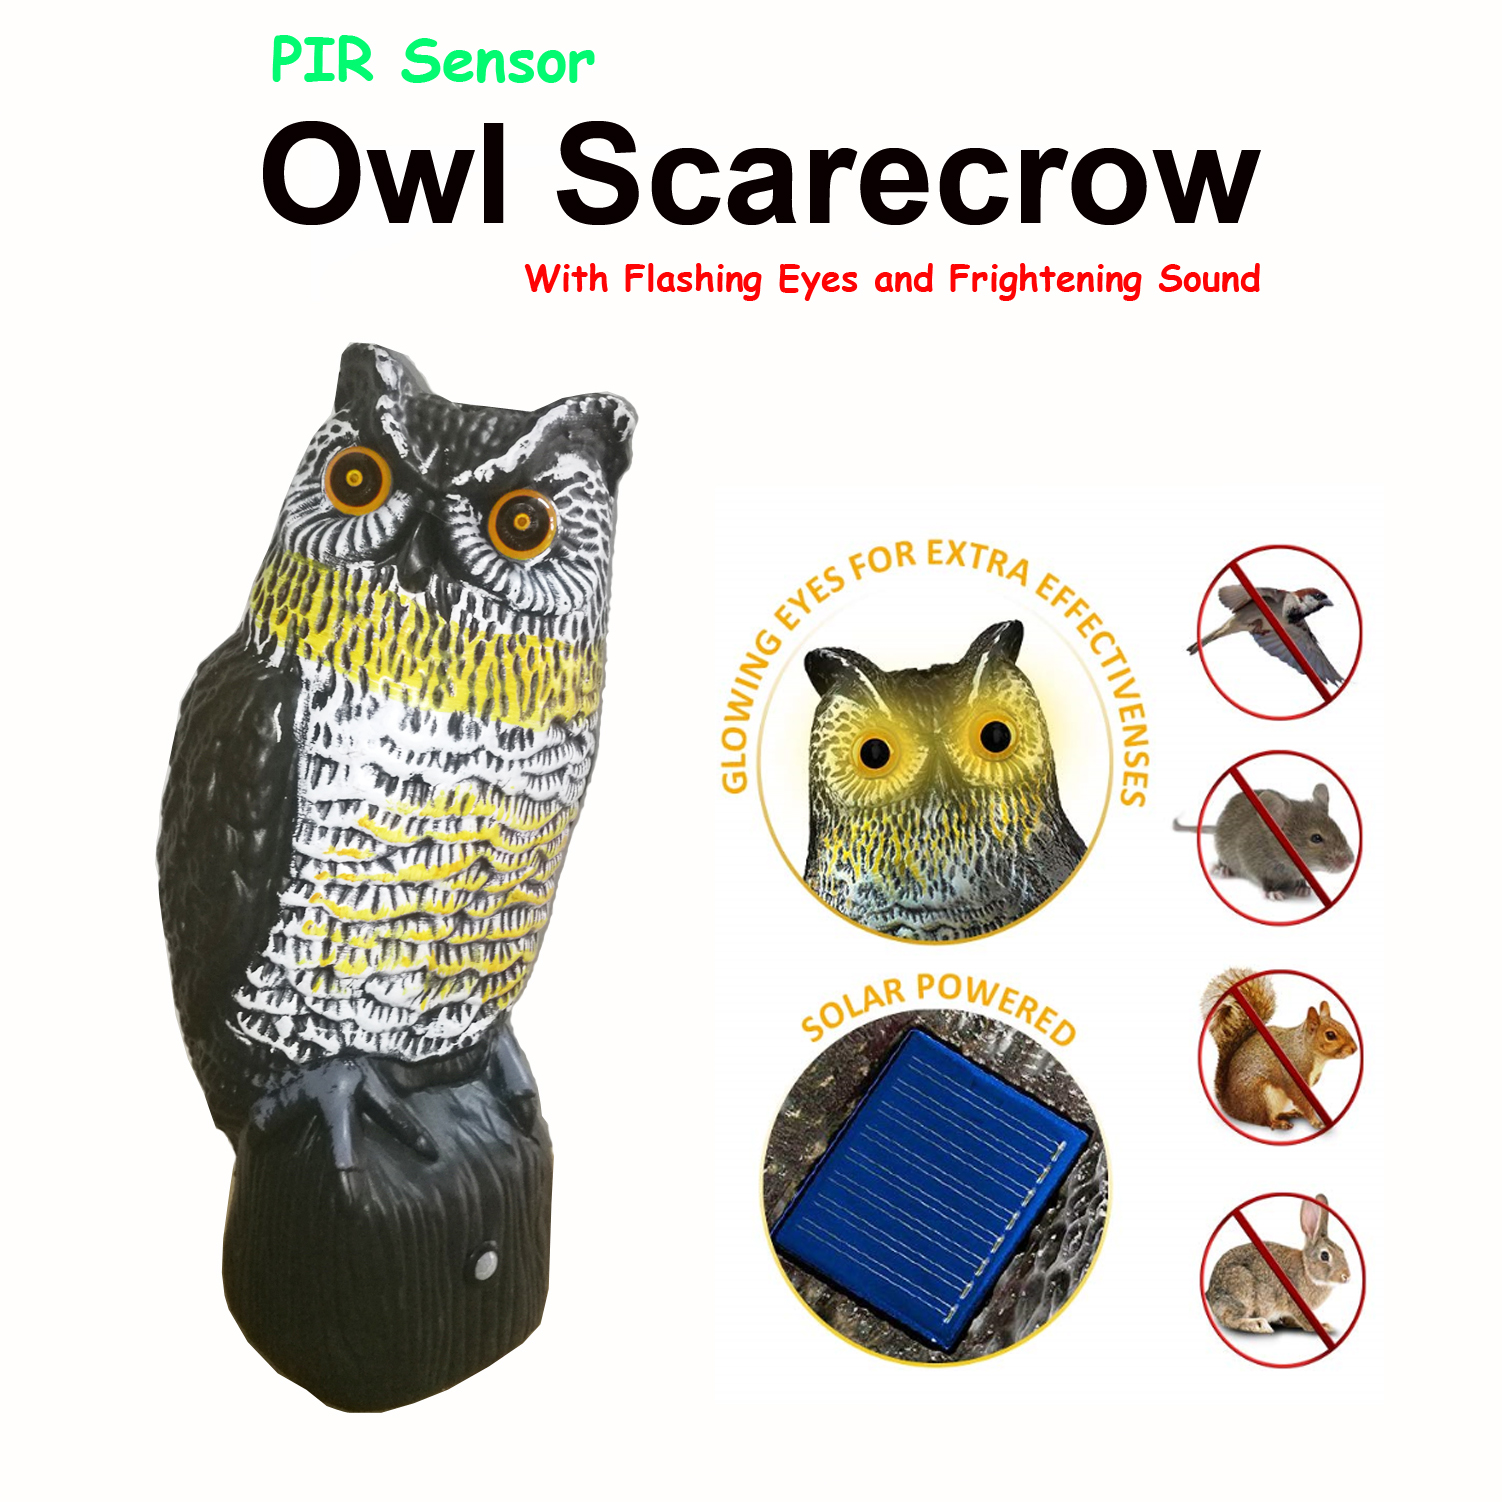 Solar Powered Bird Repellent Owl Scarecrow With Flashing Eyes And Frightening Sound -PIR Activated Garden Animal Pest Repeller